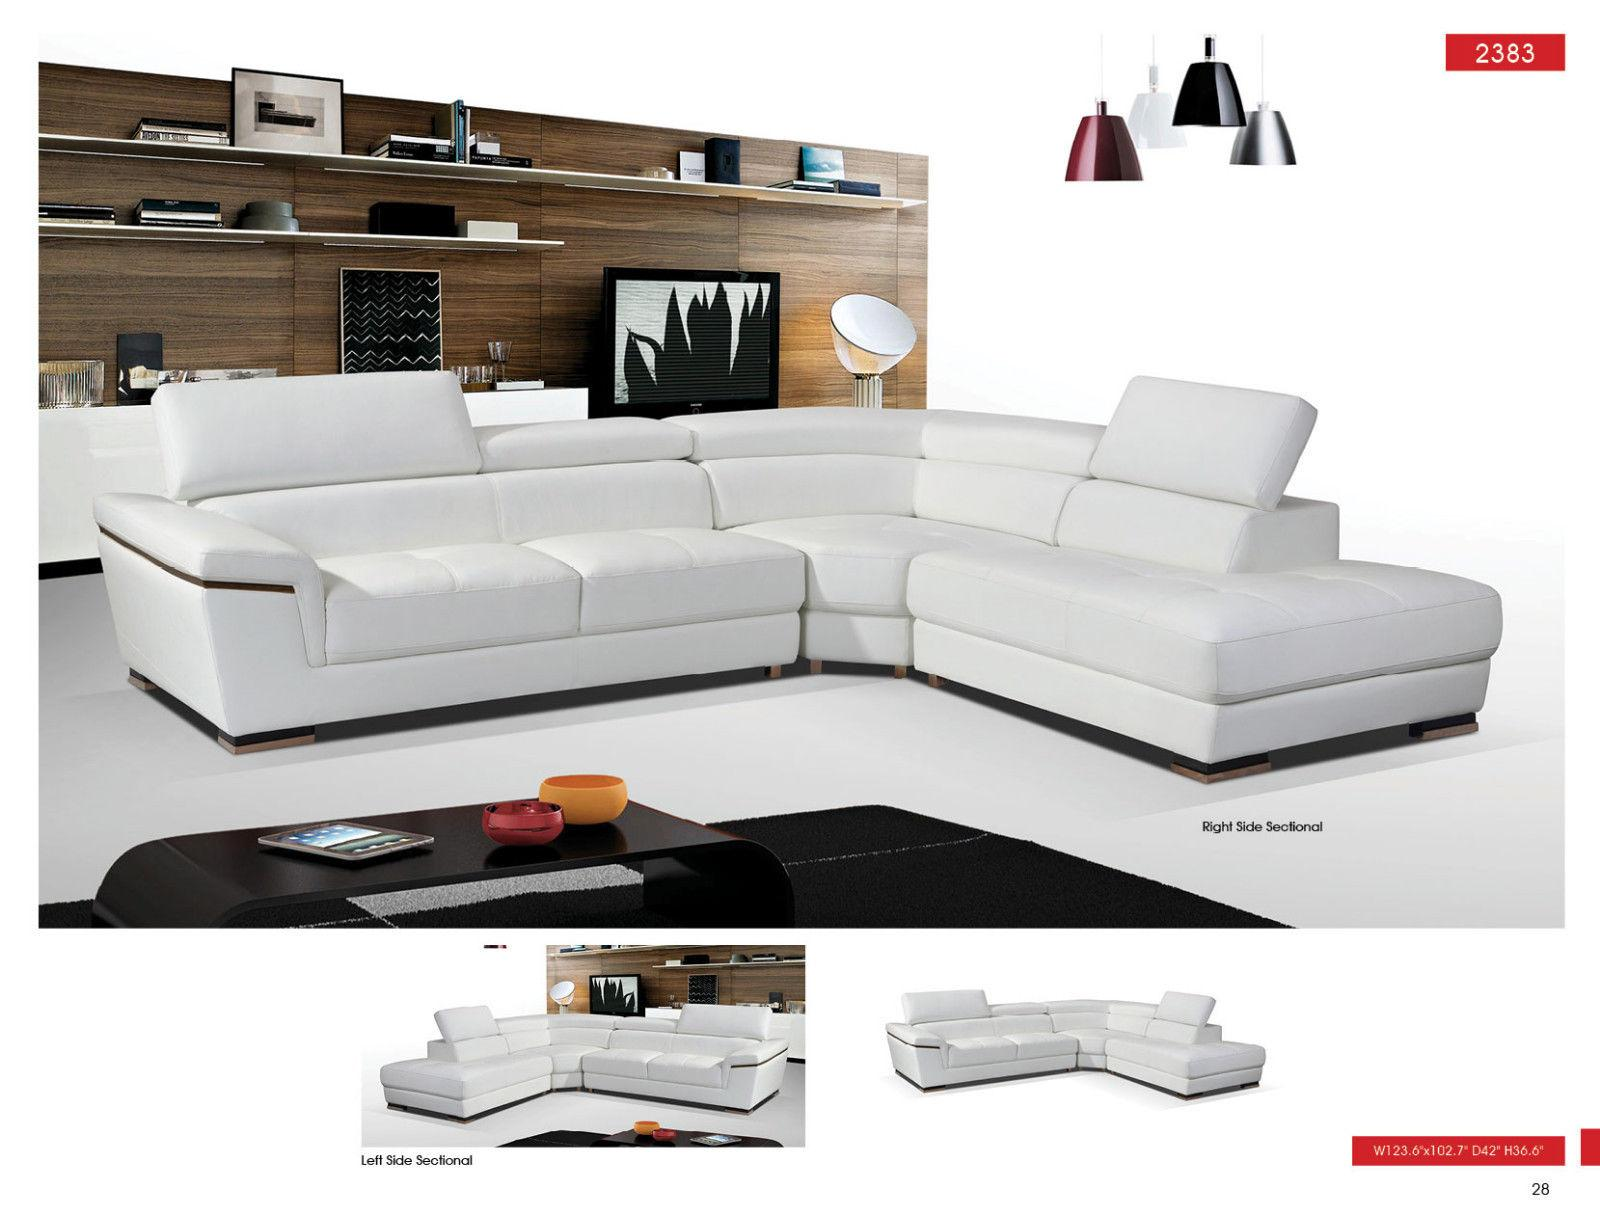 Swell Esf 2383 White Genuine Leather Sectional Sofa Right Hand Facing Contemporary Short Links Chair Design For Home Short Linksinfo